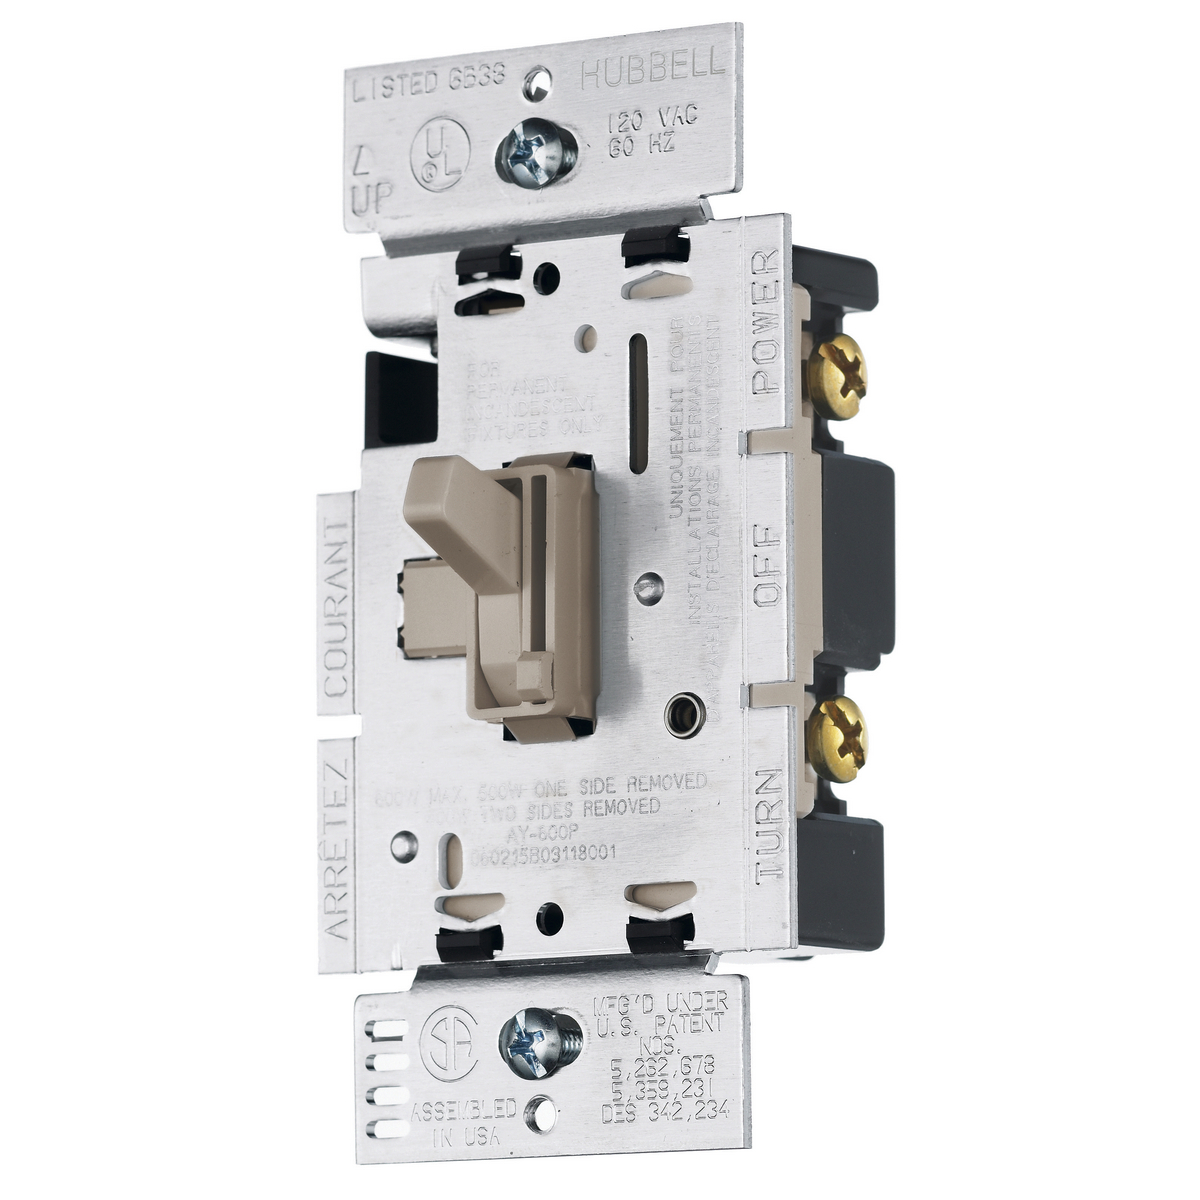 ray10pal dimmers fan speed controls residential devices rh hubbell com eaton residential & wiring devices division residential electrical wiring devices